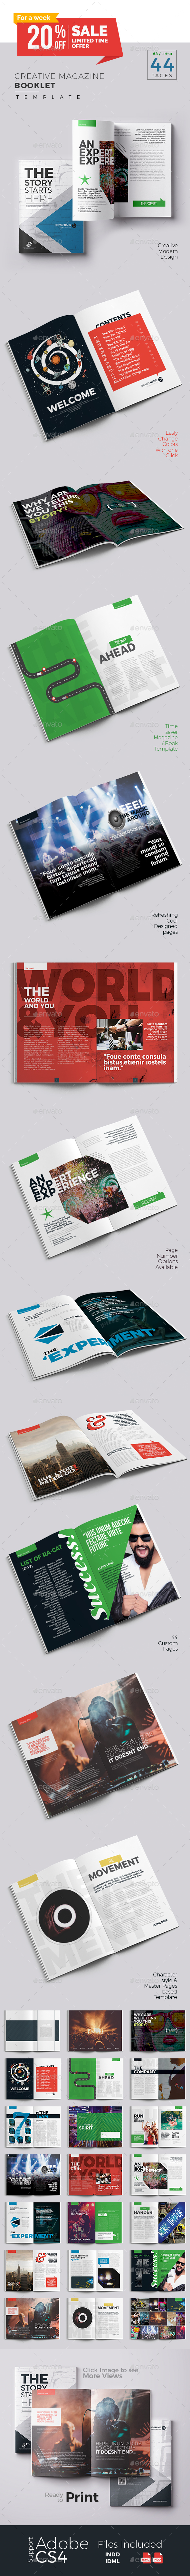 Creative Magazine Booklet Template - Magazines Print Templates